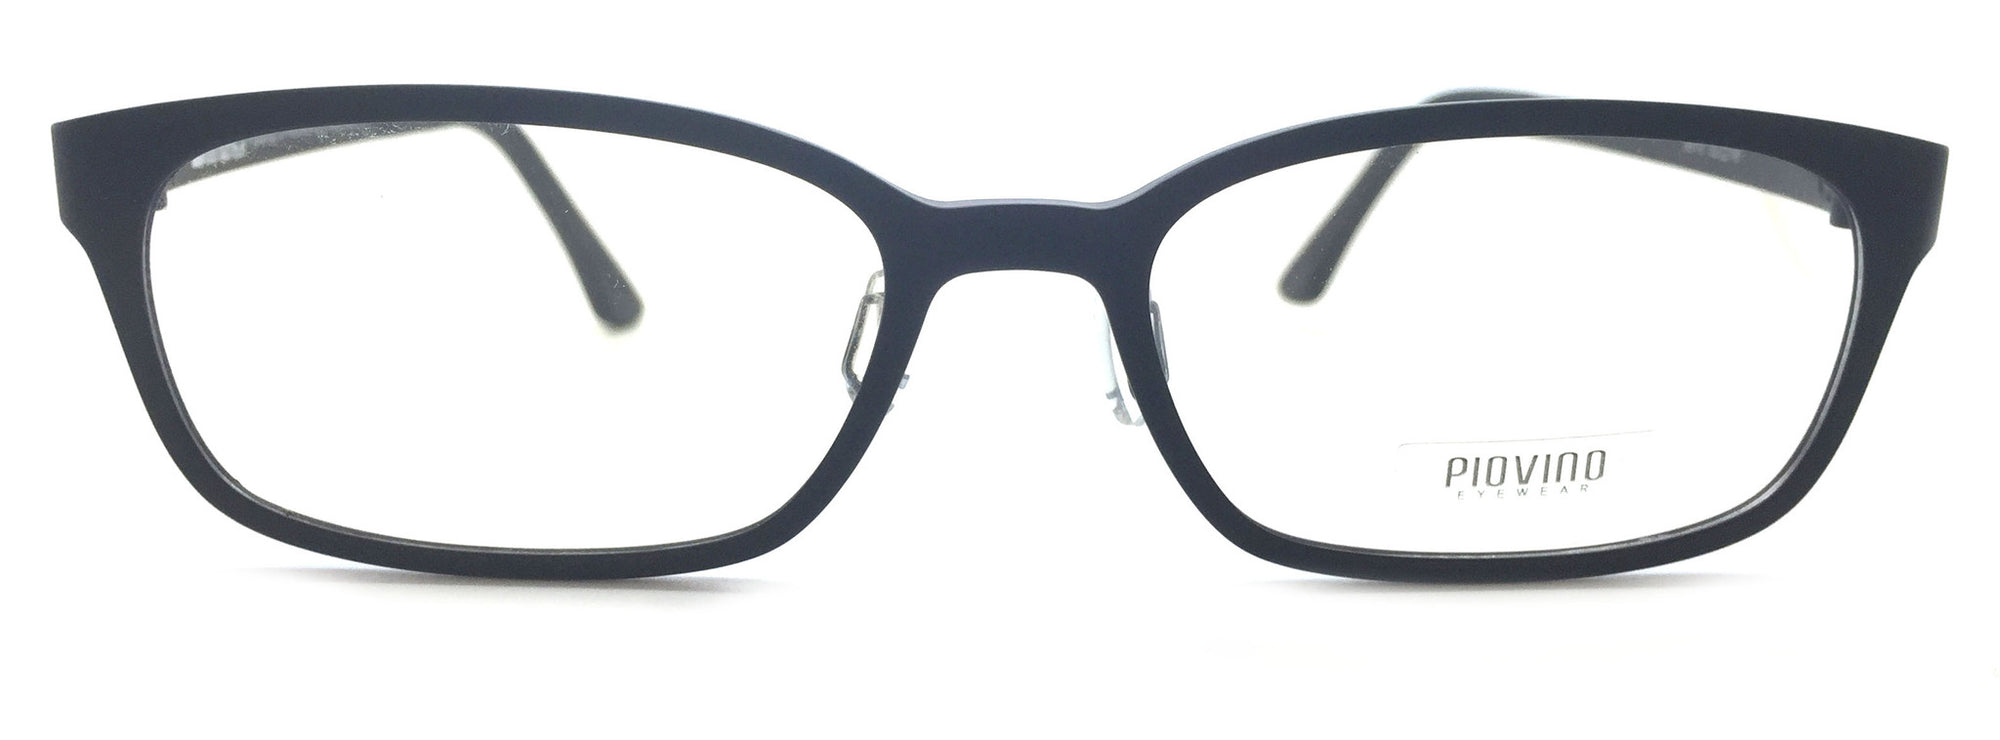 Piovino Prescription Eyeglasses Frame Super Light, Flexible, Ultem PV 3010 Black